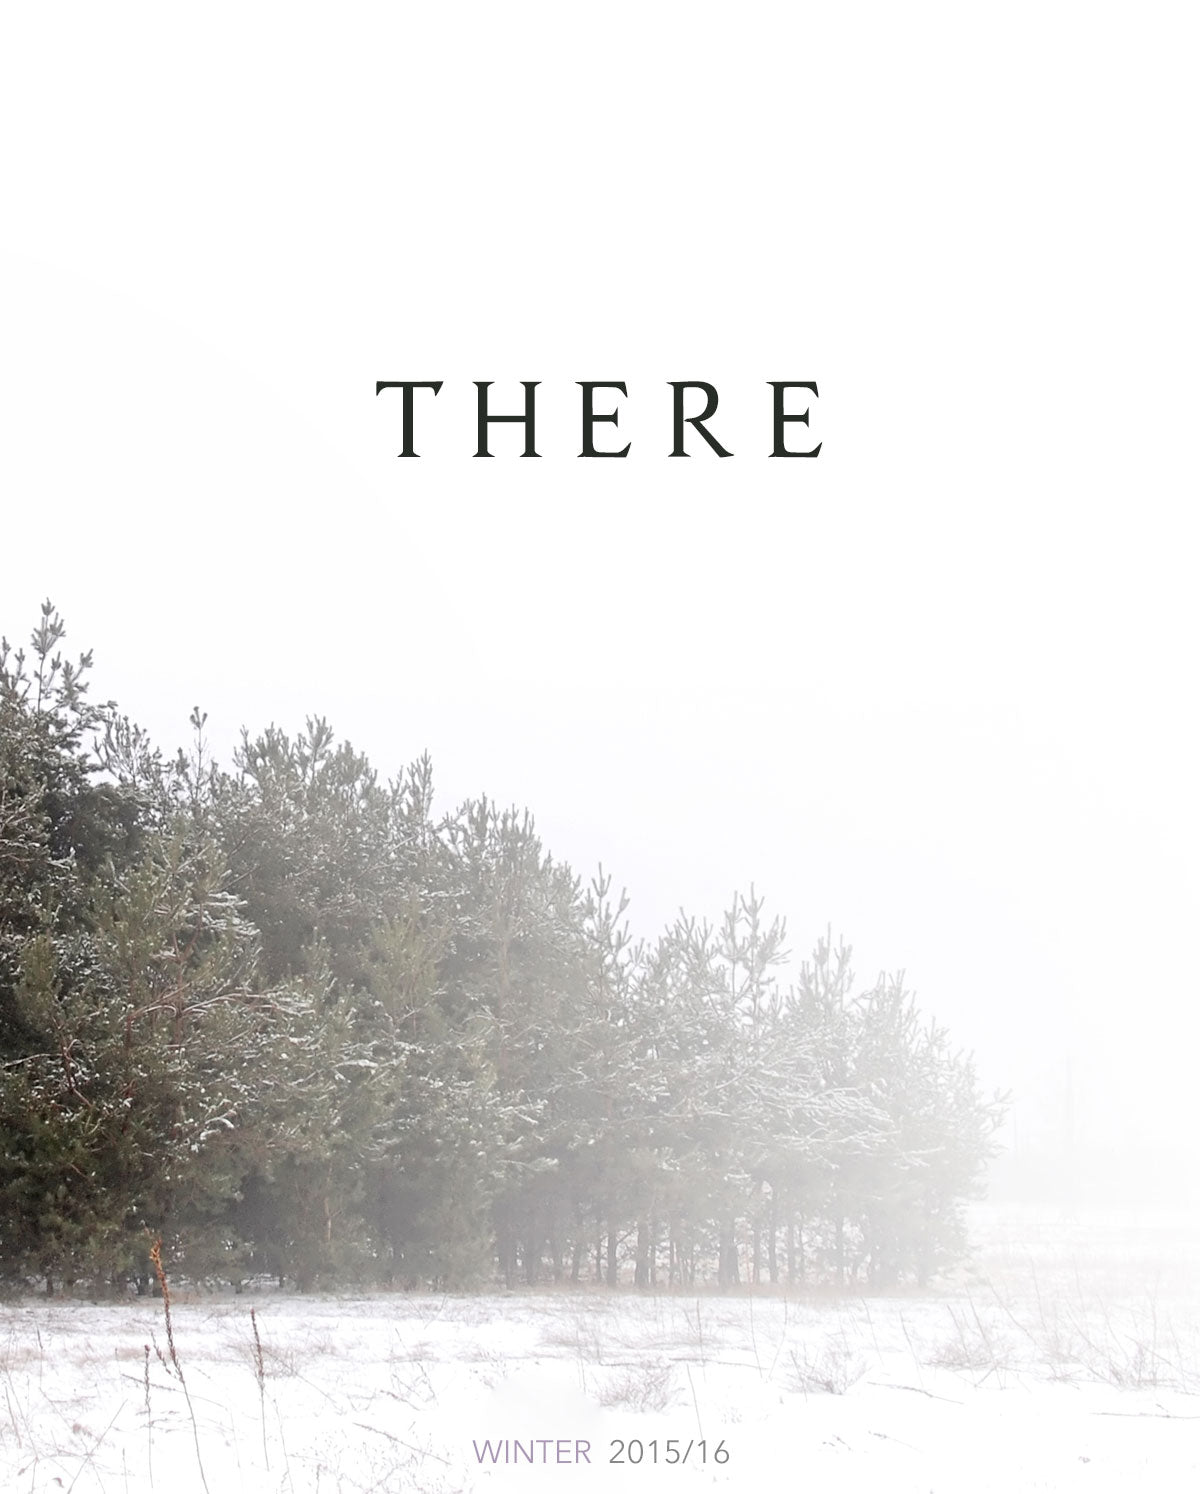 THERE vol. 4 Winter 2015/16